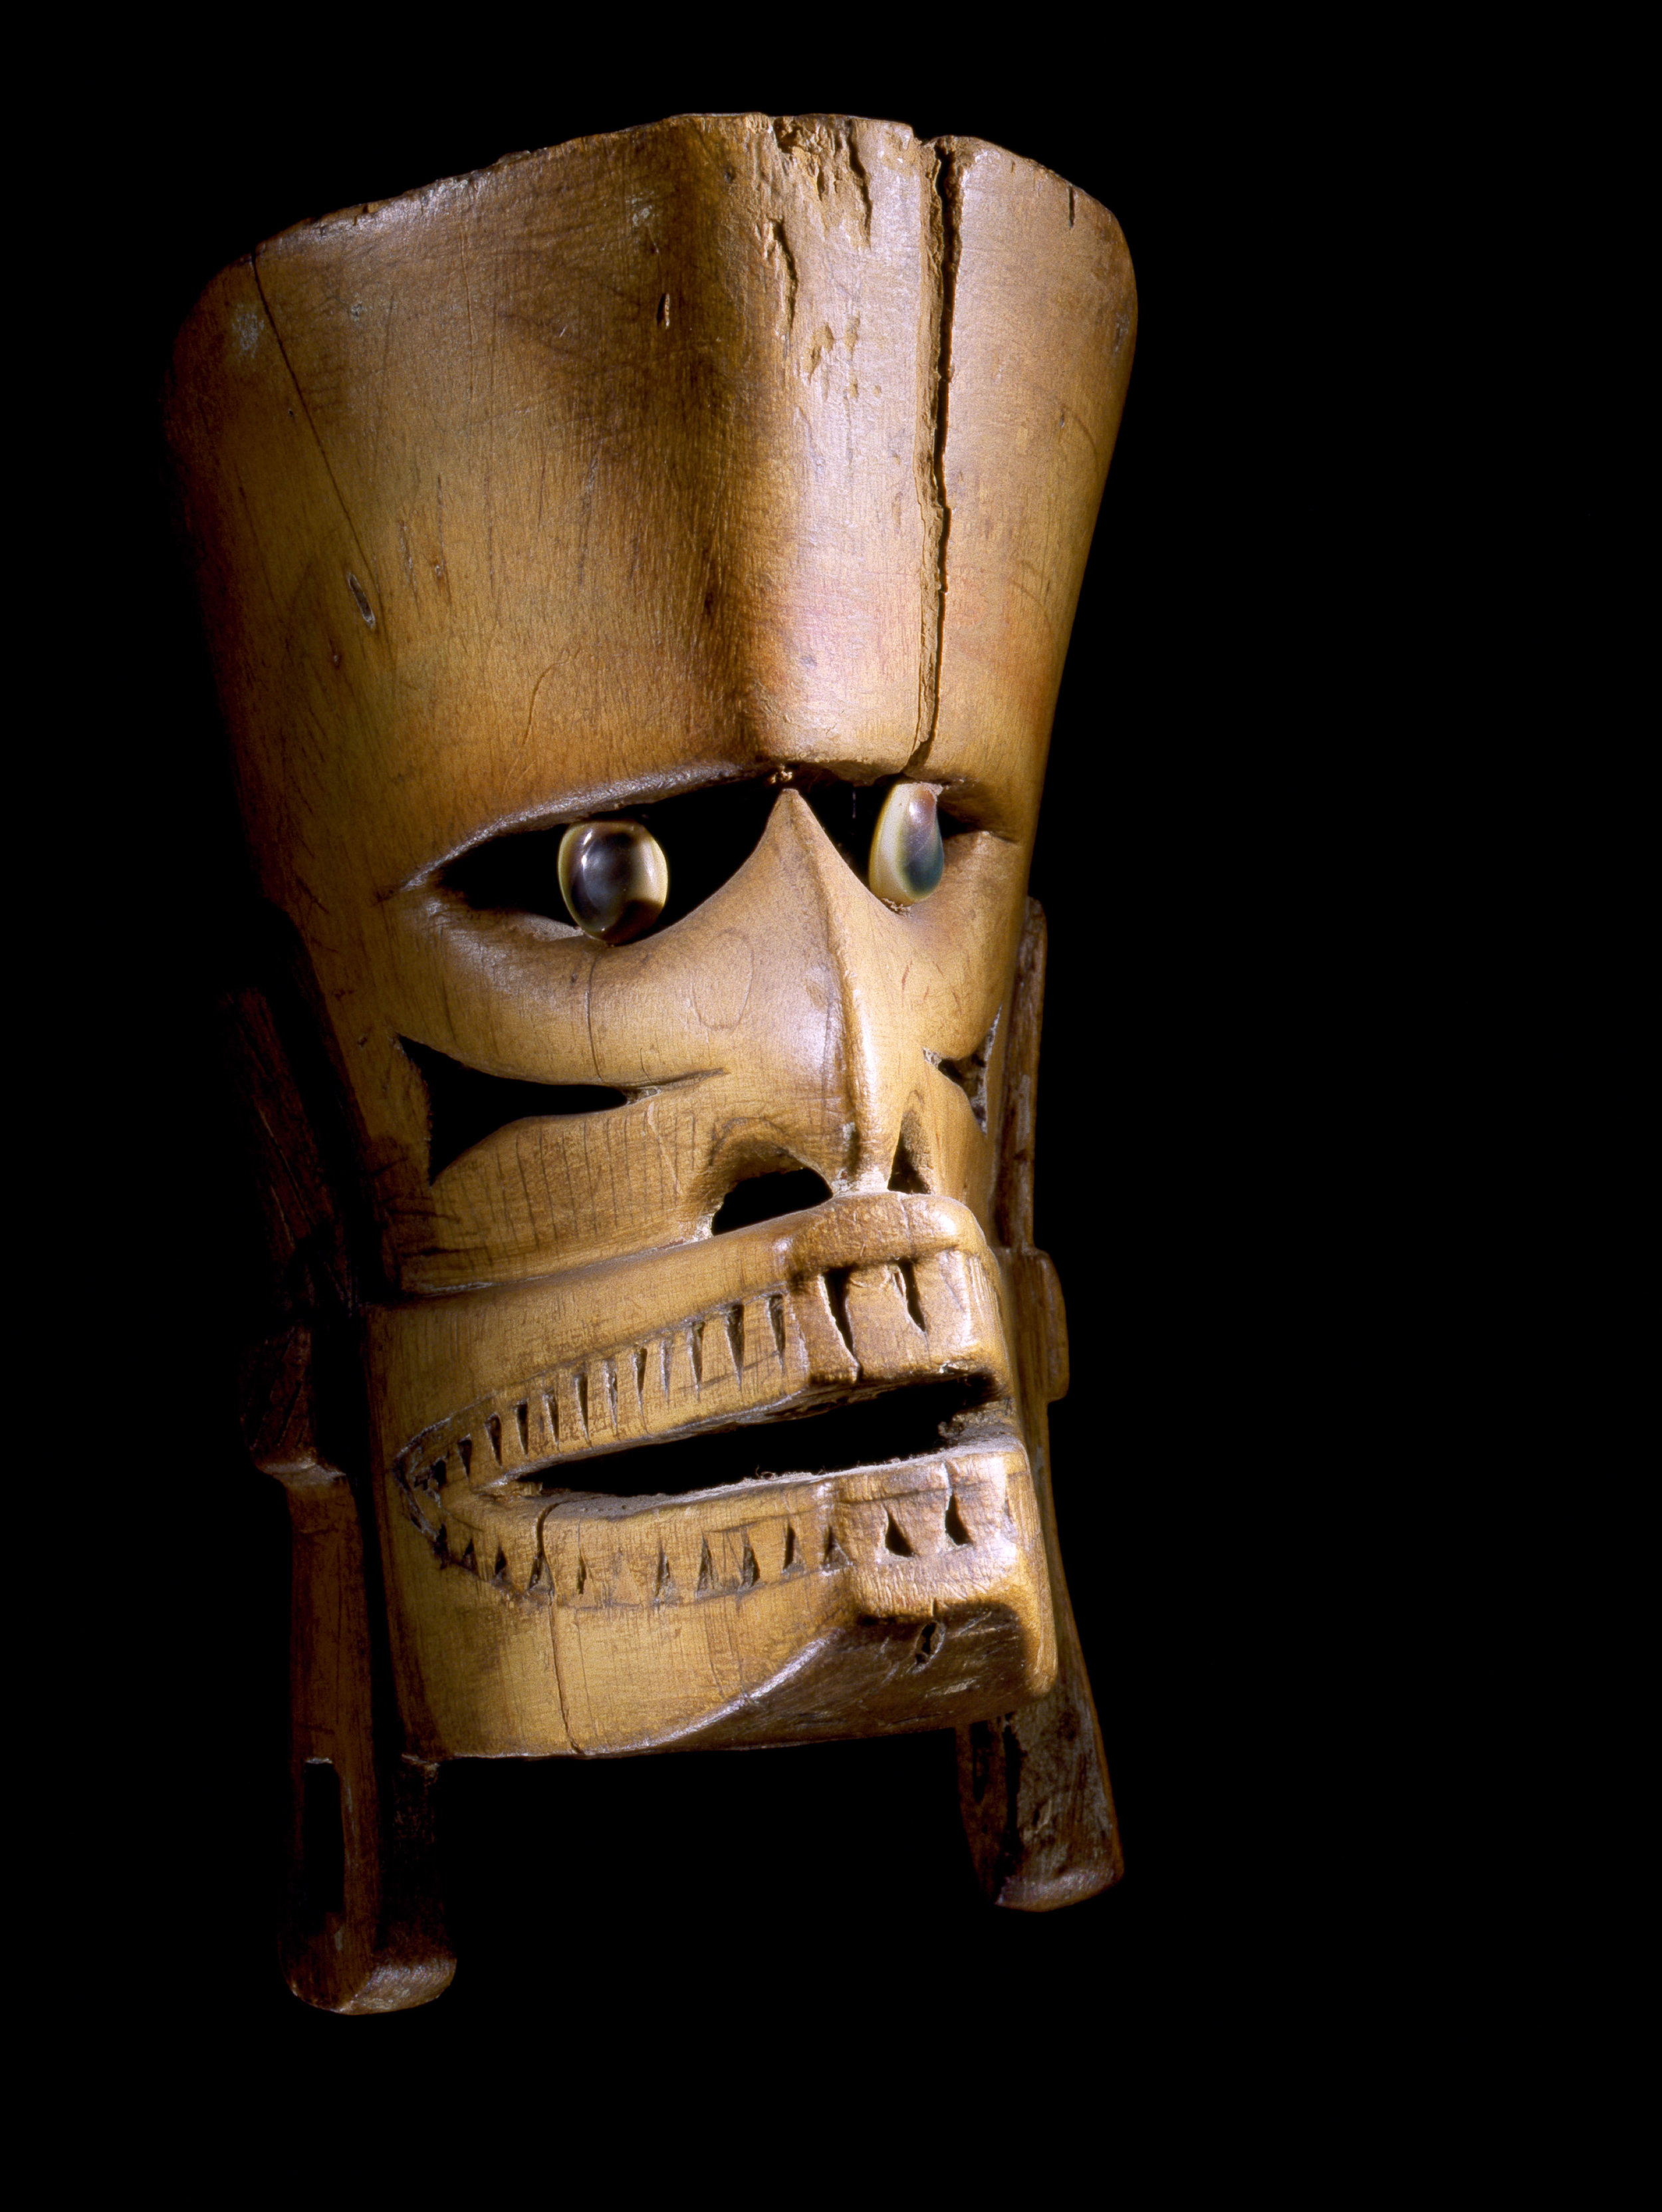 New Ireland mask (stripped of pigment) with snail operculae eyes. Papue New Guinea Location 01 Credit Line: Werner Forman Archive/ Private Collection. Courtesy Entwistle Gallery.